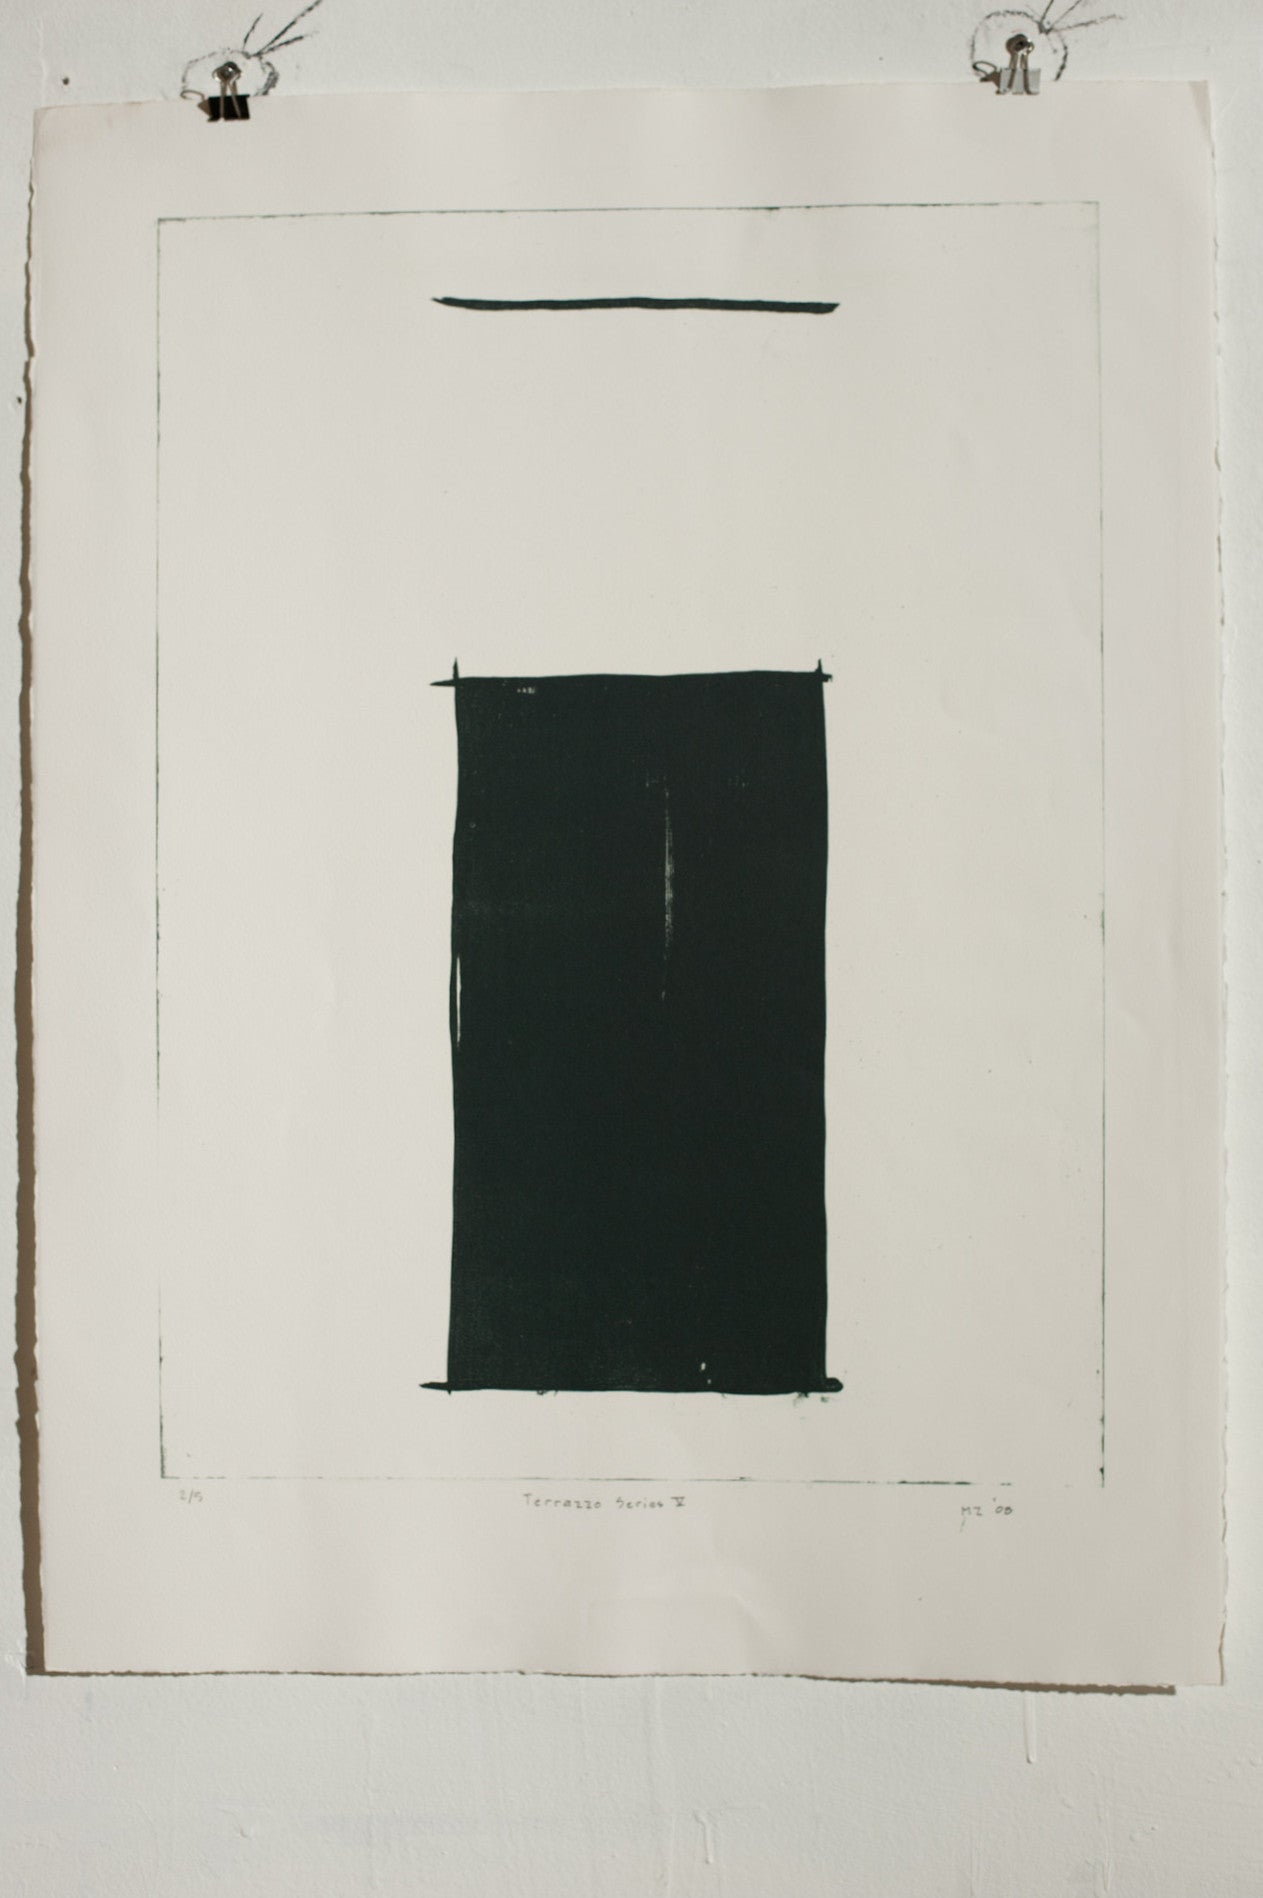 Manuel Zeitlen - Untitled - Lithograph Print on Archival Paper